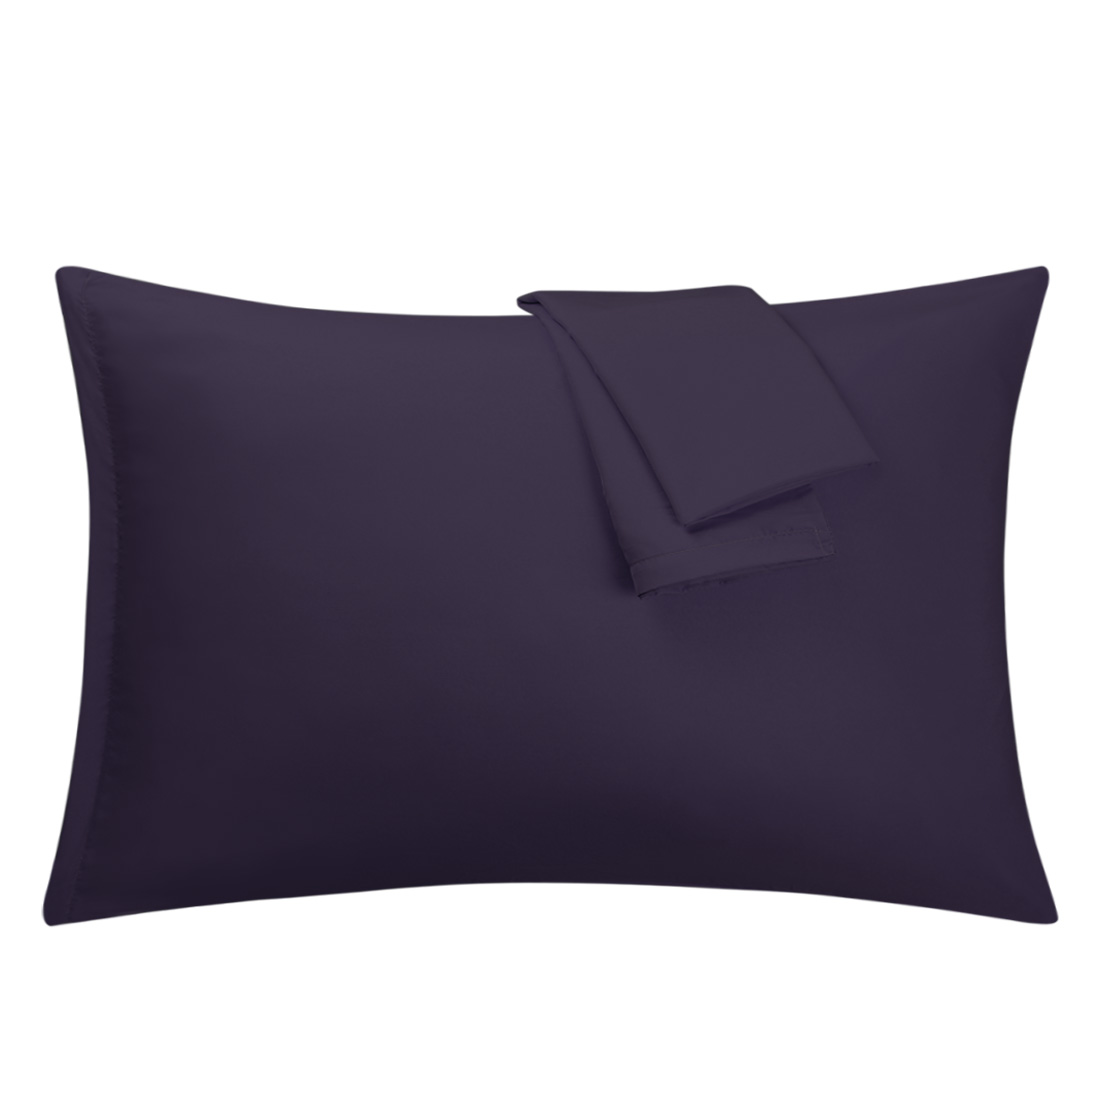 King Eggplant Pillow Case Covers Soft Microfiber Pillowcases Zippered, 2 Pack